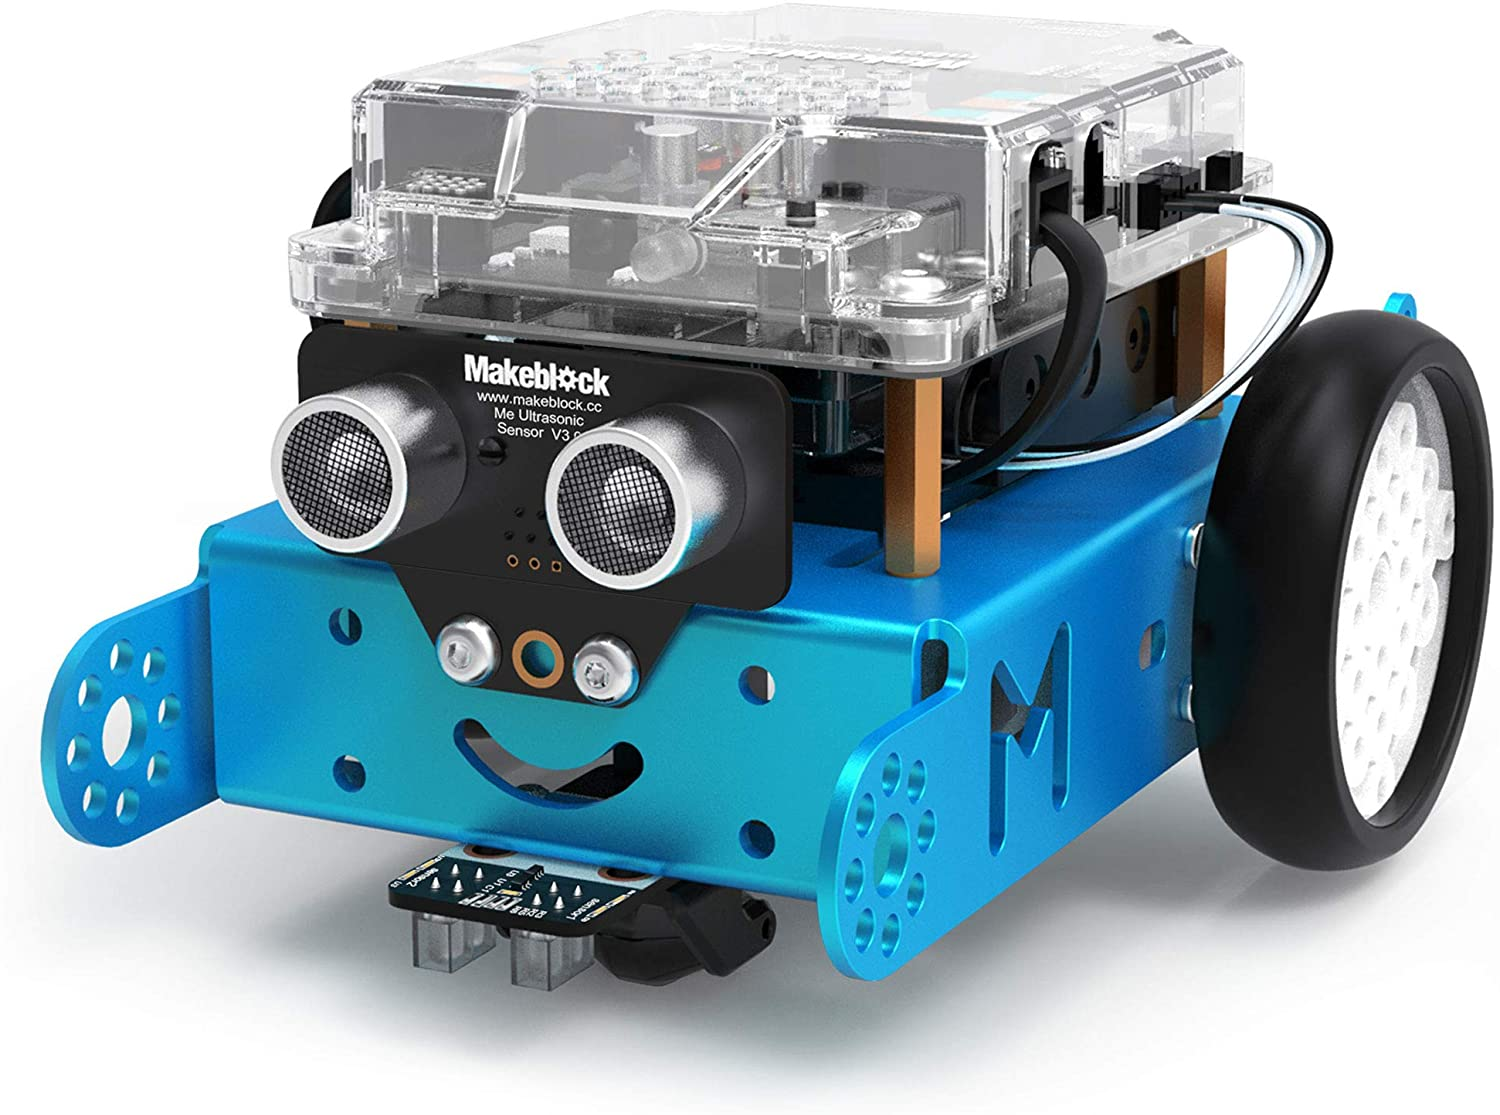 Makeblock mBot DIY Mechanical Building Blocks STEM Education Robot Kit